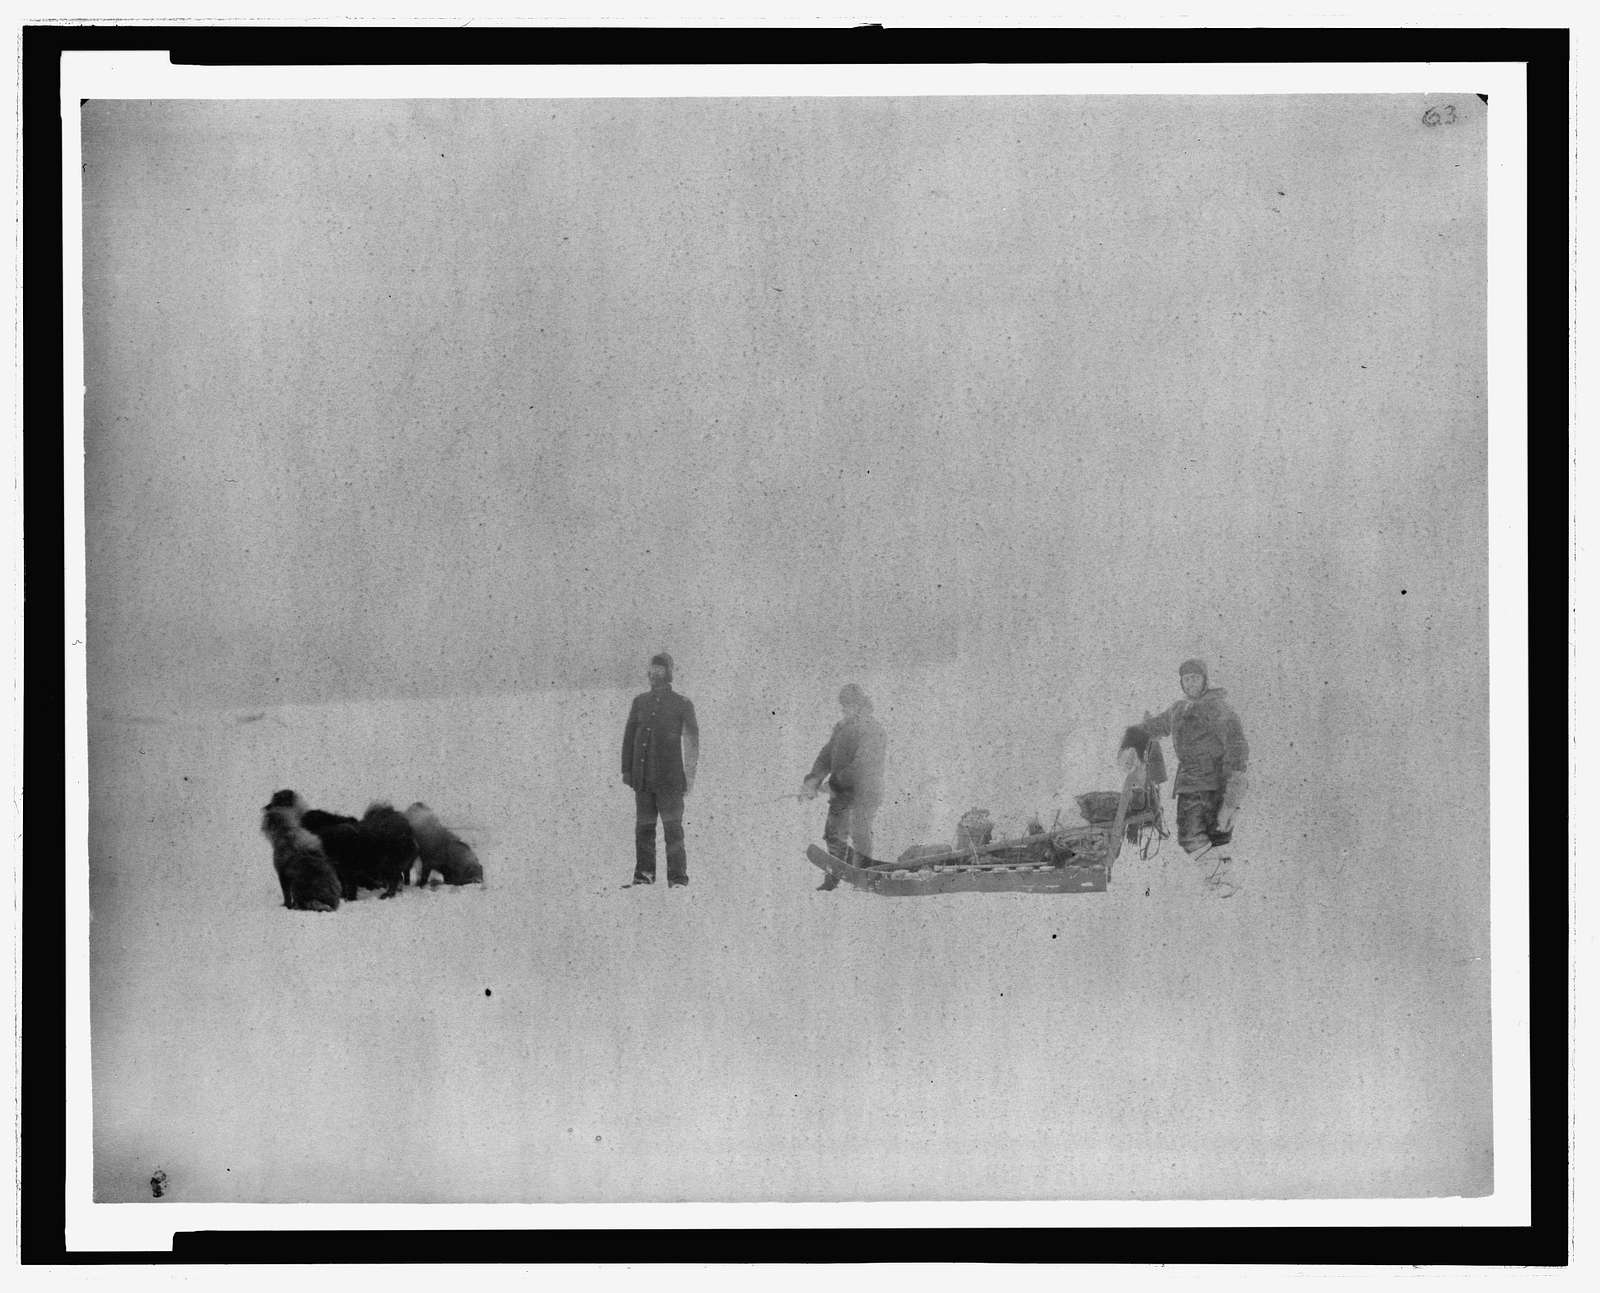 [Lady Franklin Bay Expedition members Sgt. Jewell and Eskimo Christansen starting from Ft. Conger to support Dr. Octave Pavy, March, 1882]